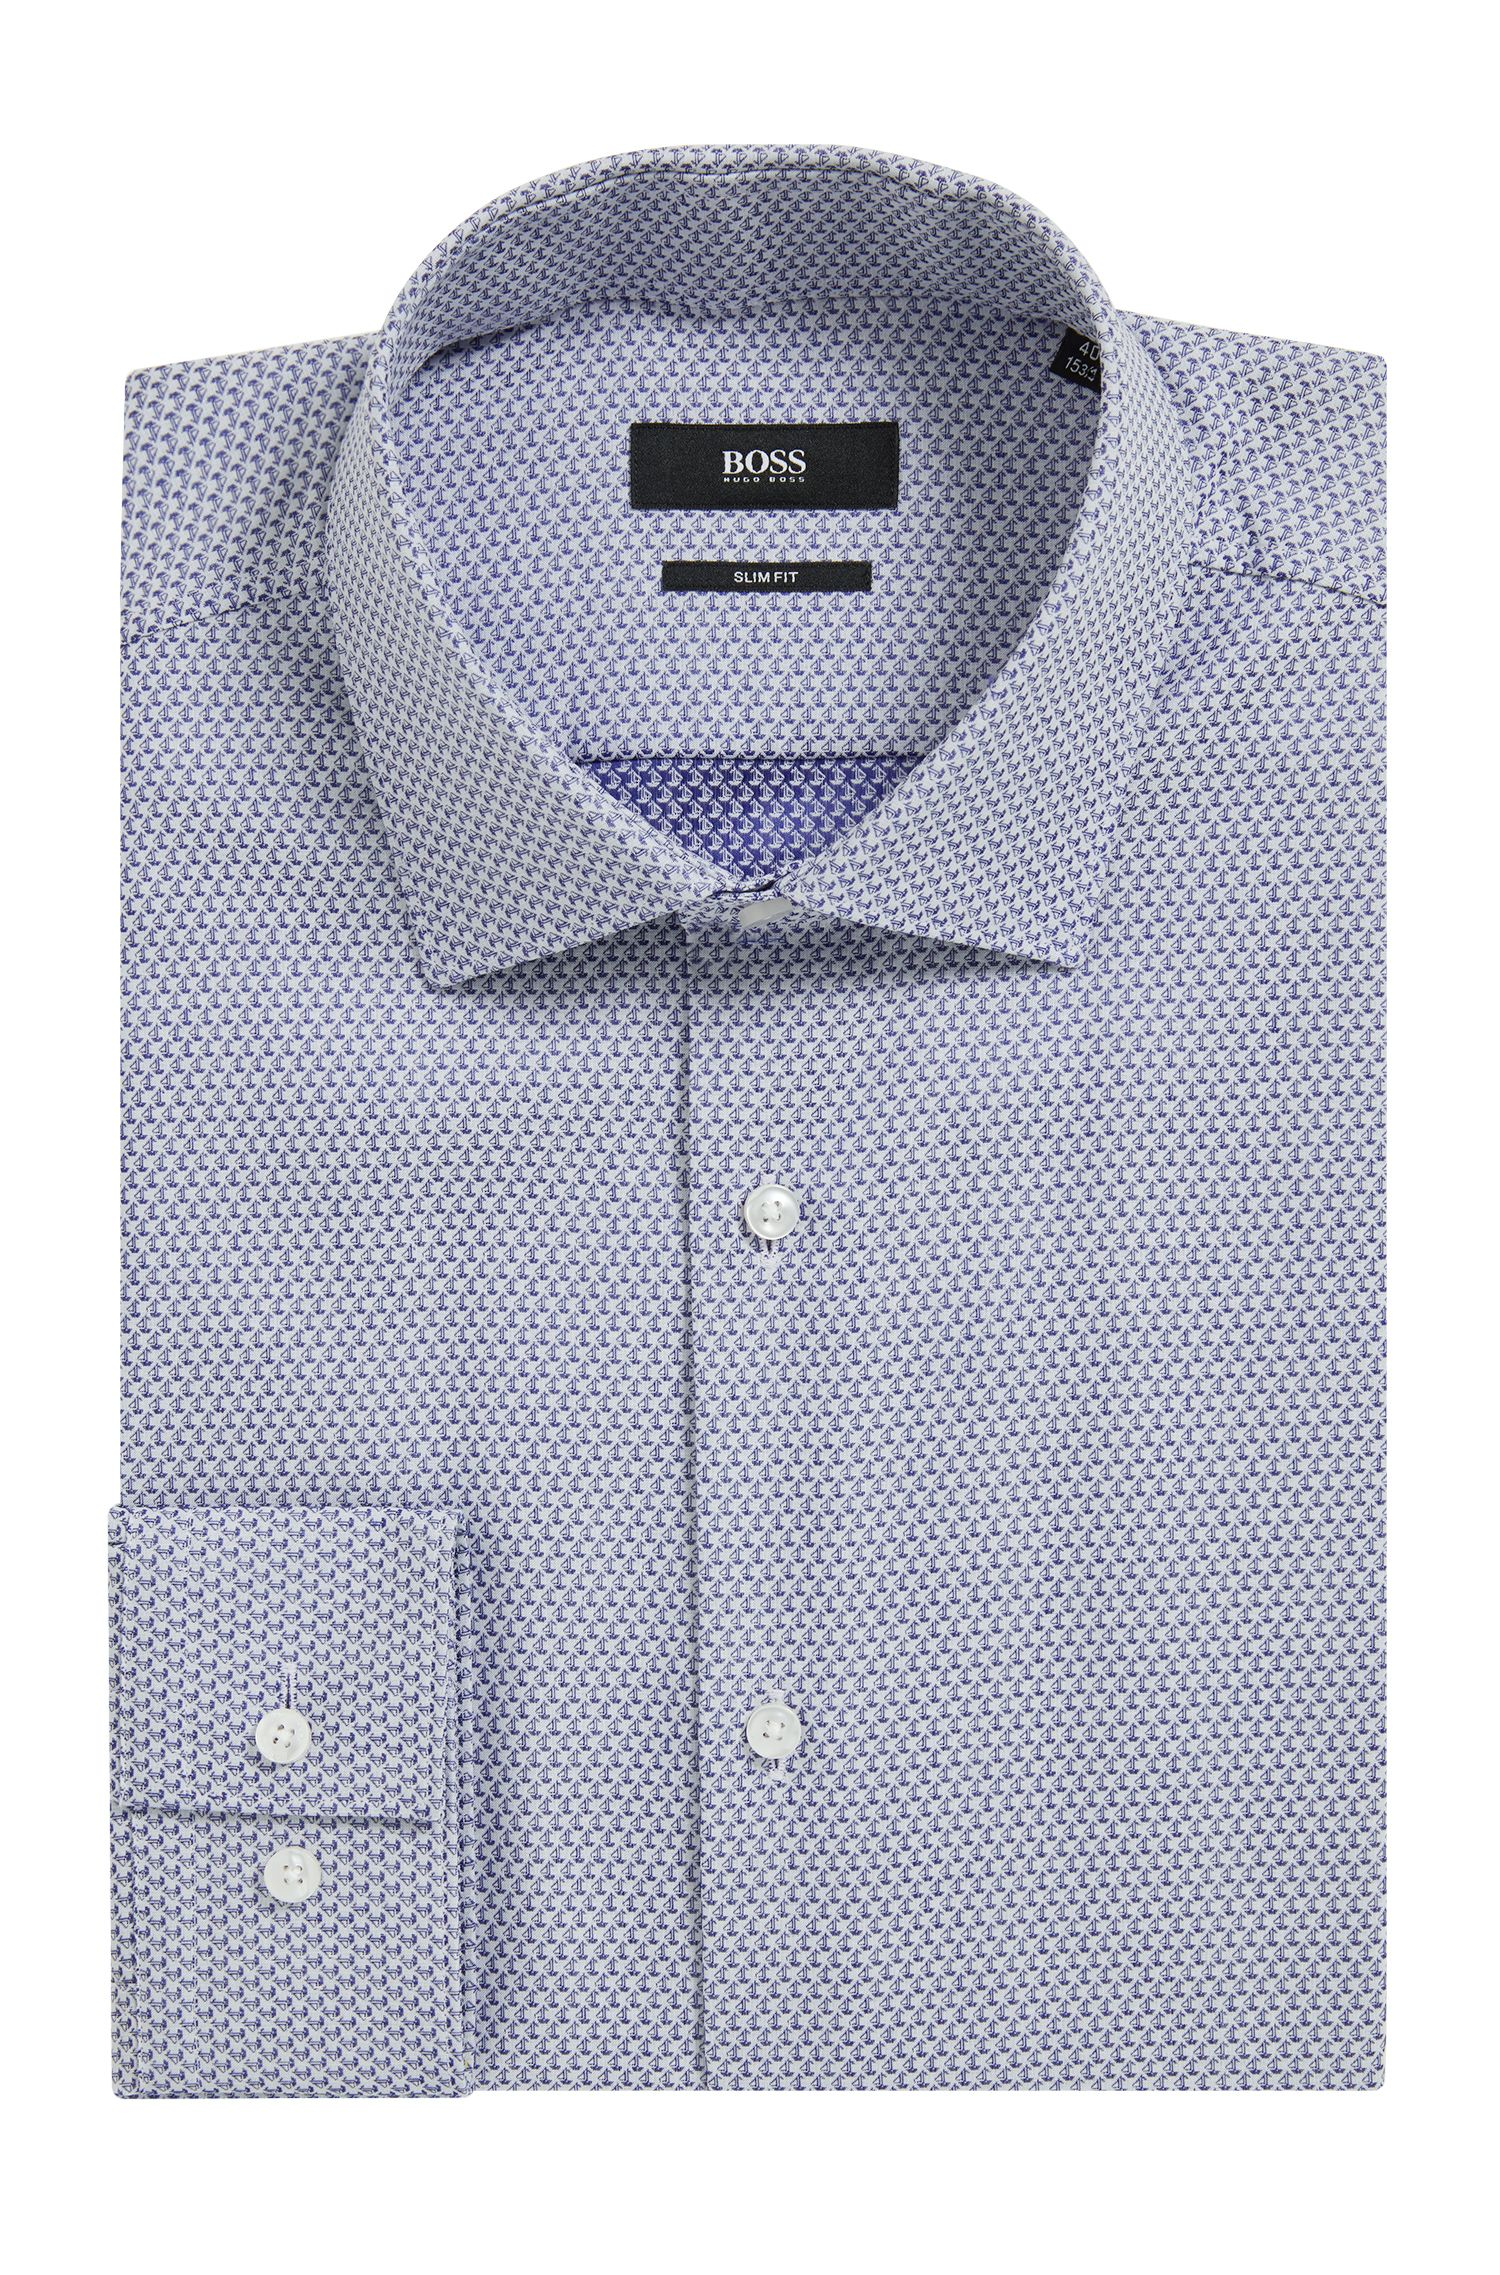 Boat-Print Cotton Dress Shirt, Slim Fit | Ismo, Blue